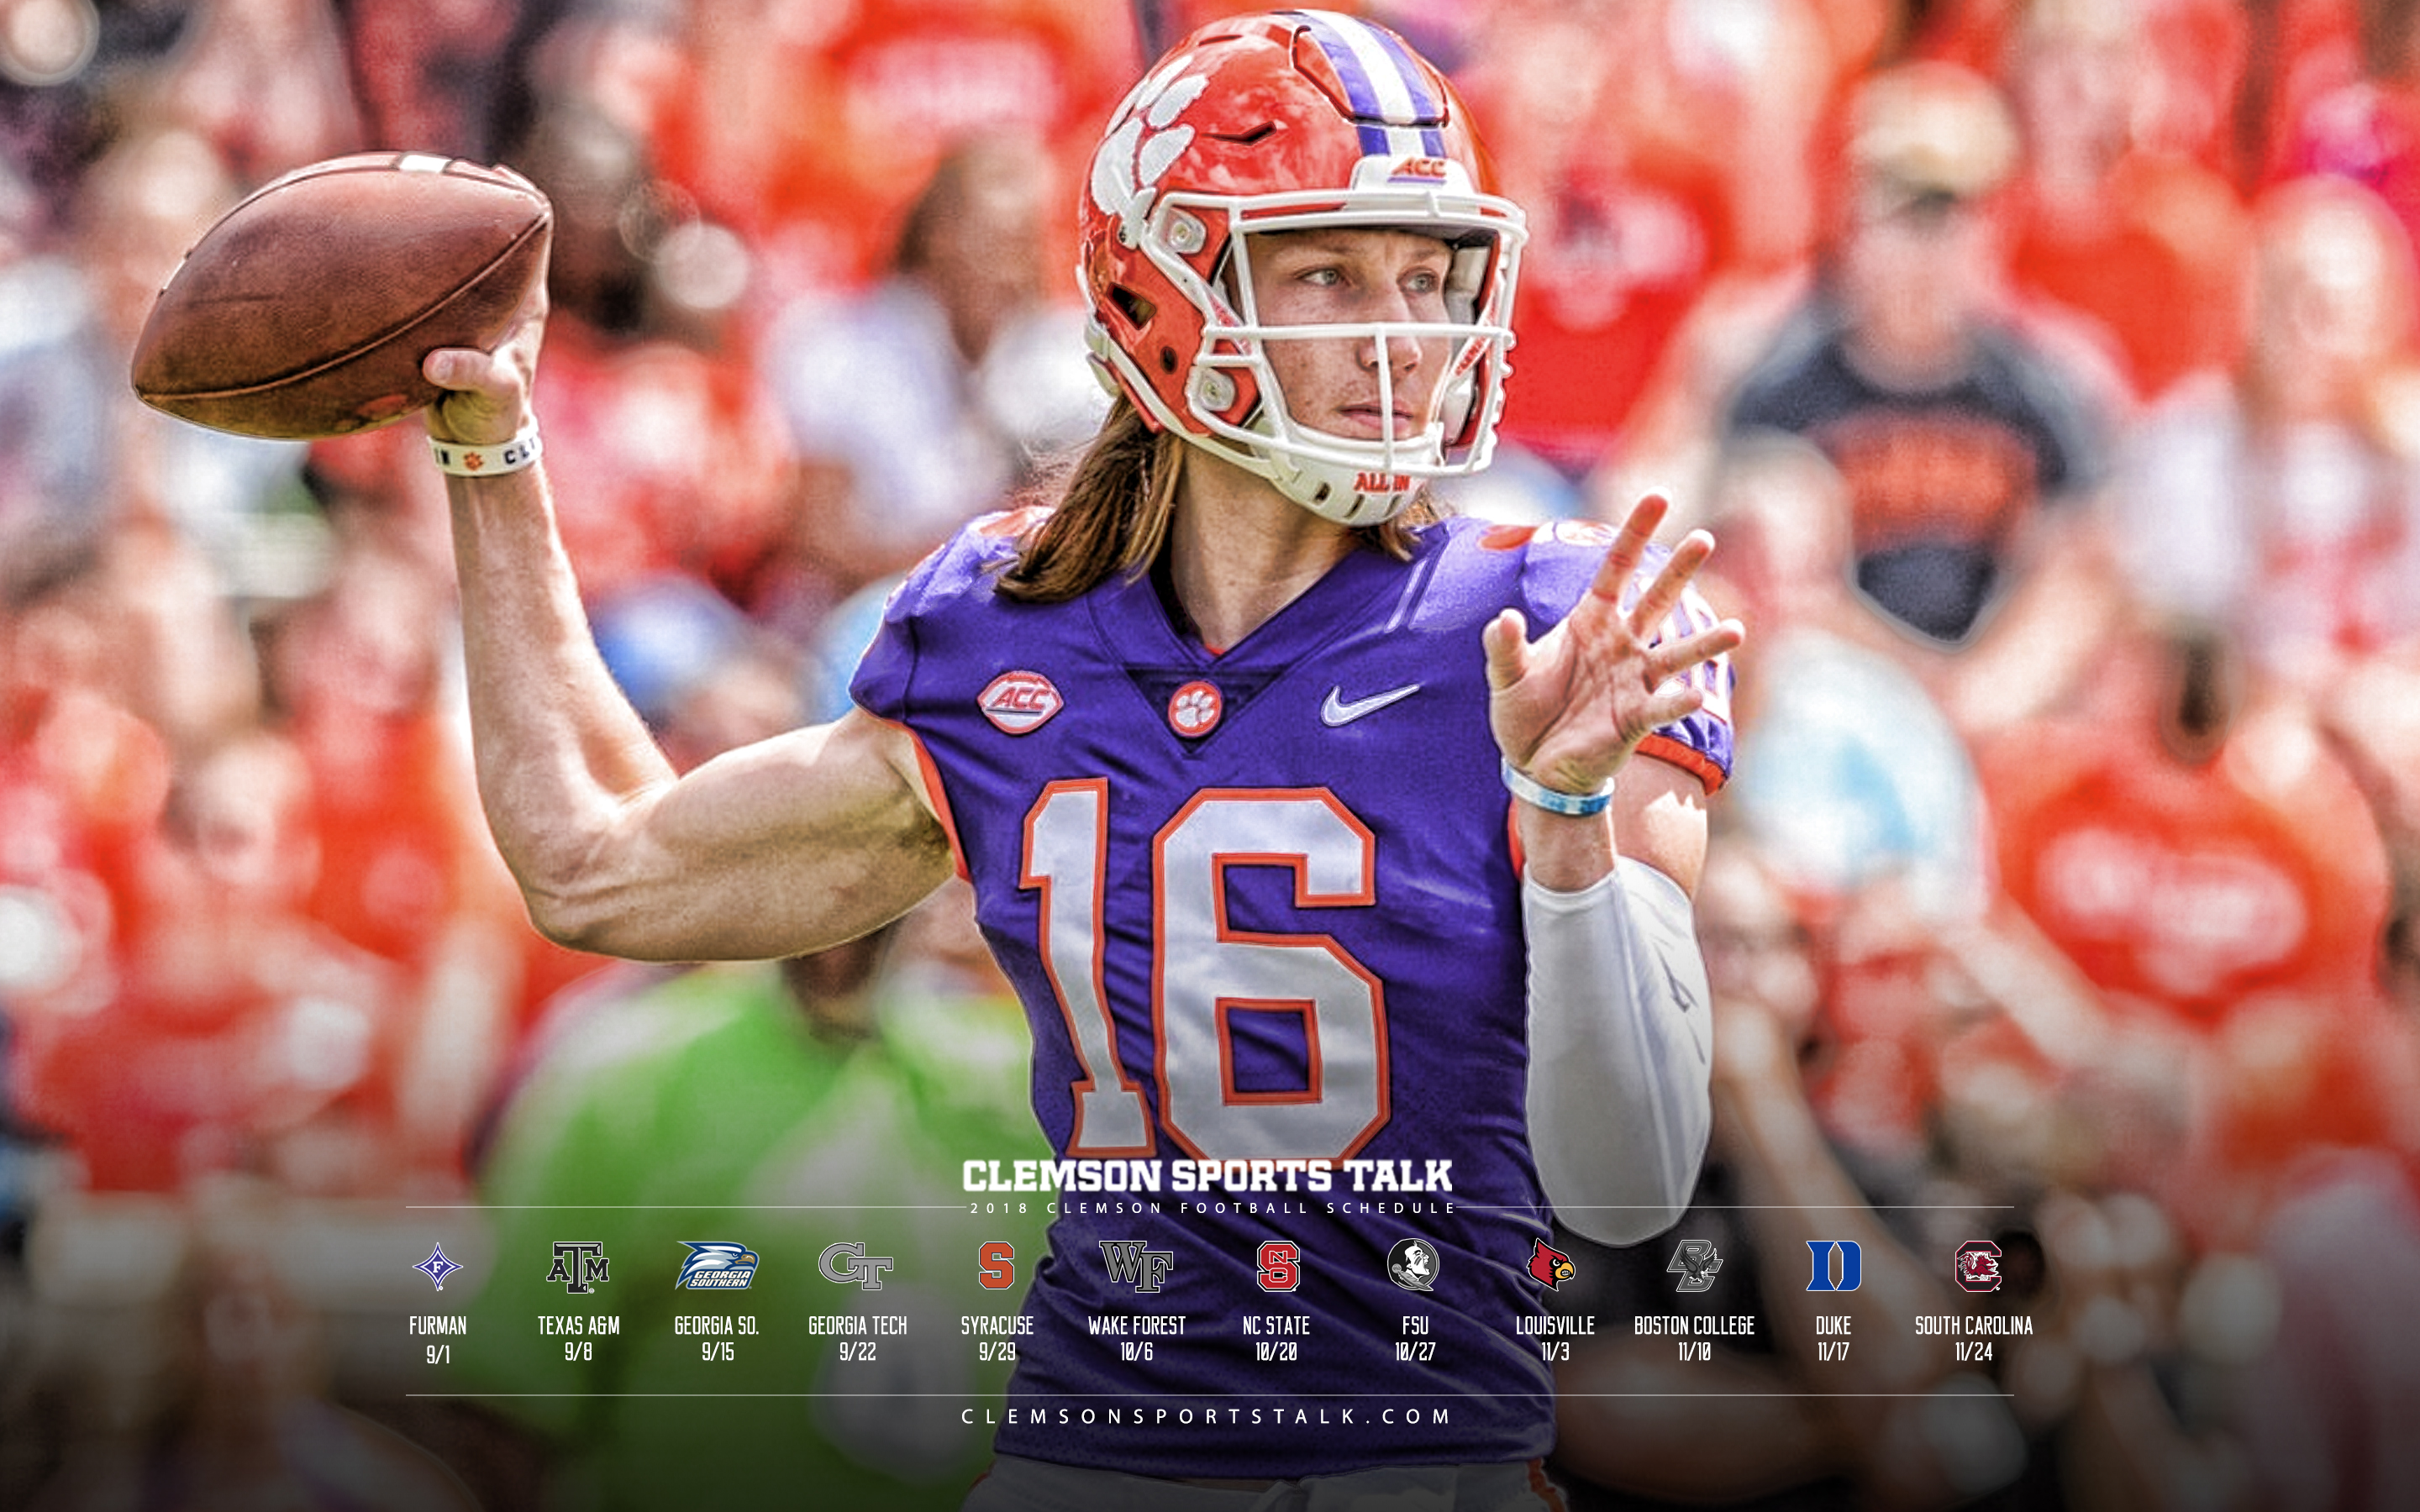 2018 Clemson Football Wallpapers Clemson Sports Talk